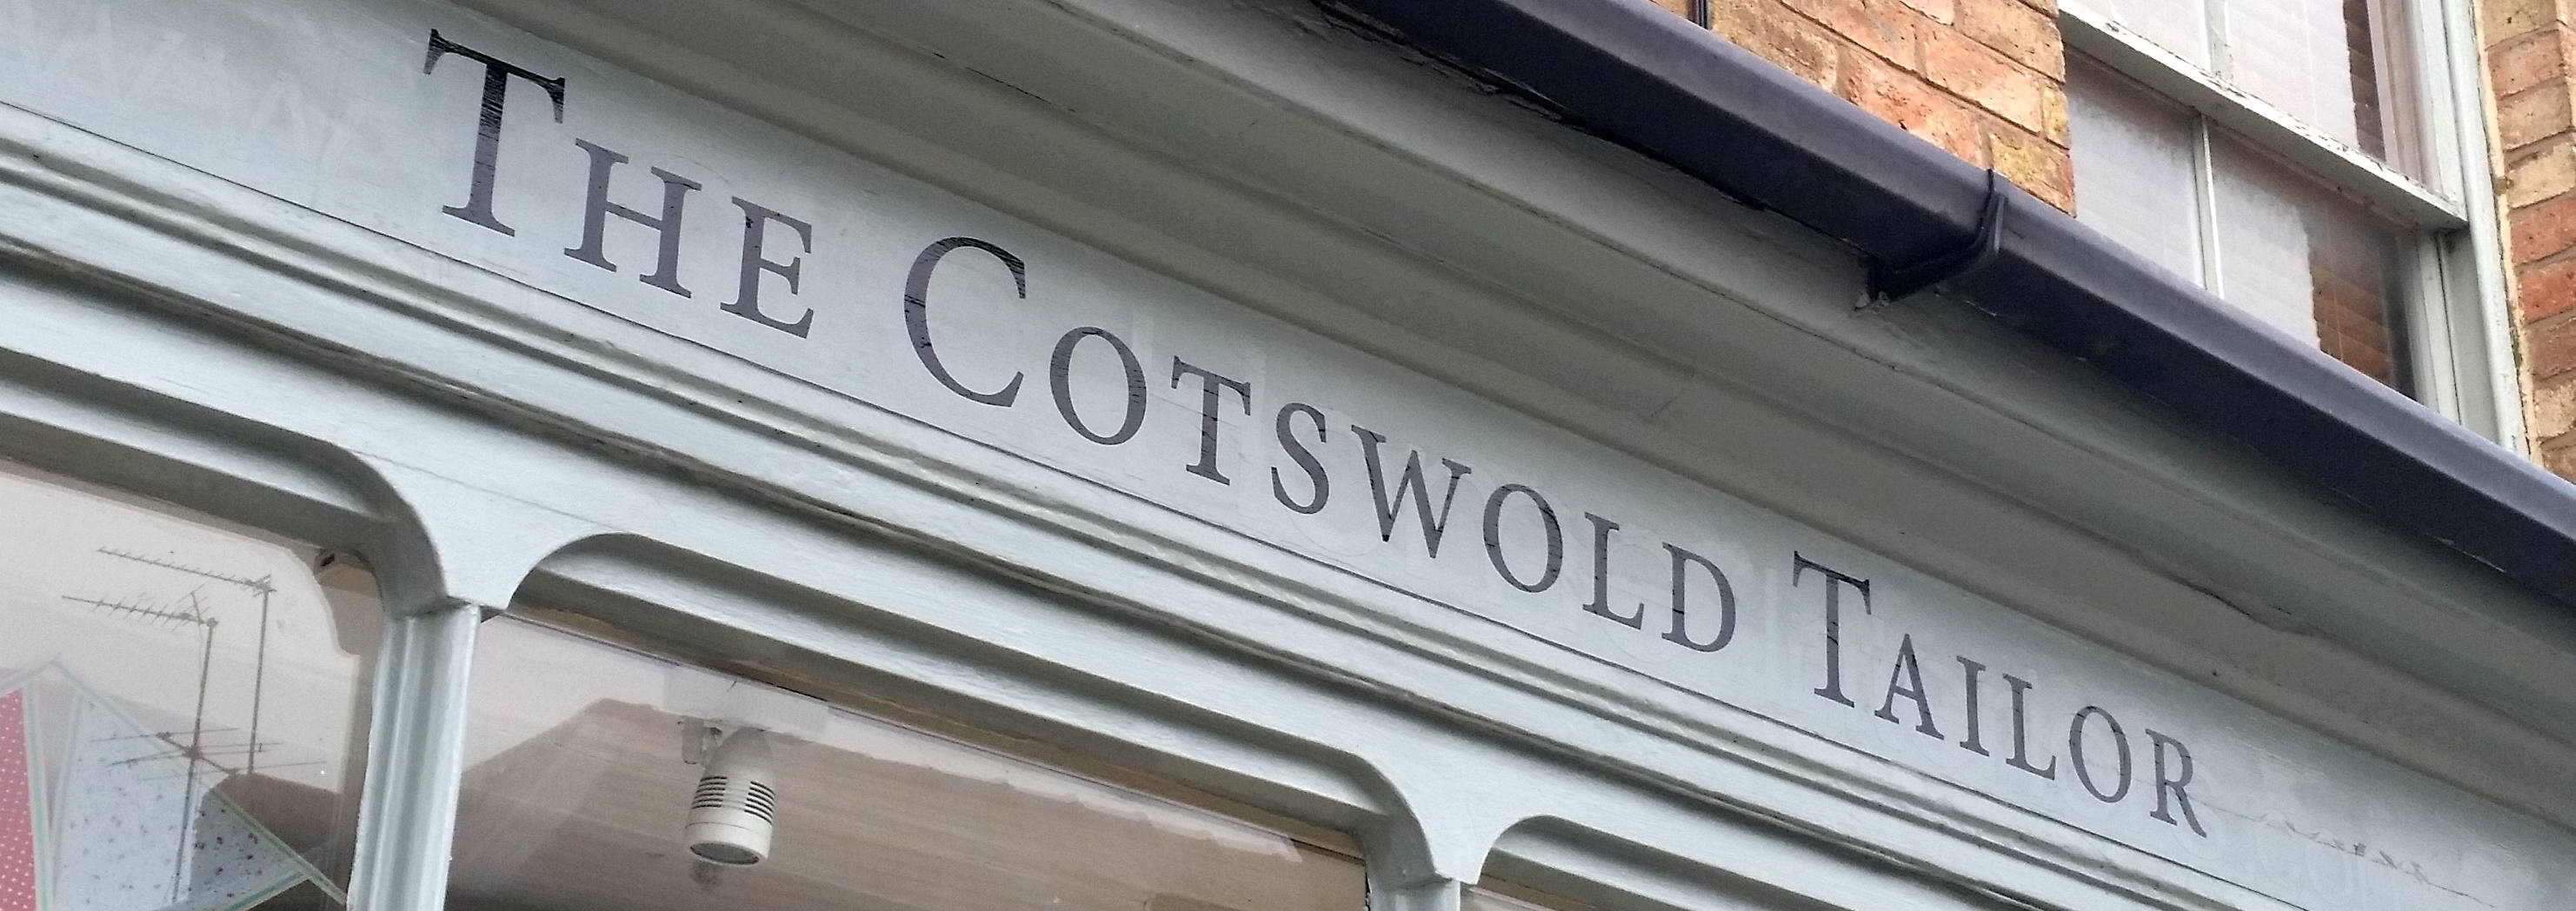 The Cotswold Tailor, a menswear shop in Shipston specialising in tailored suits and wedding hire.